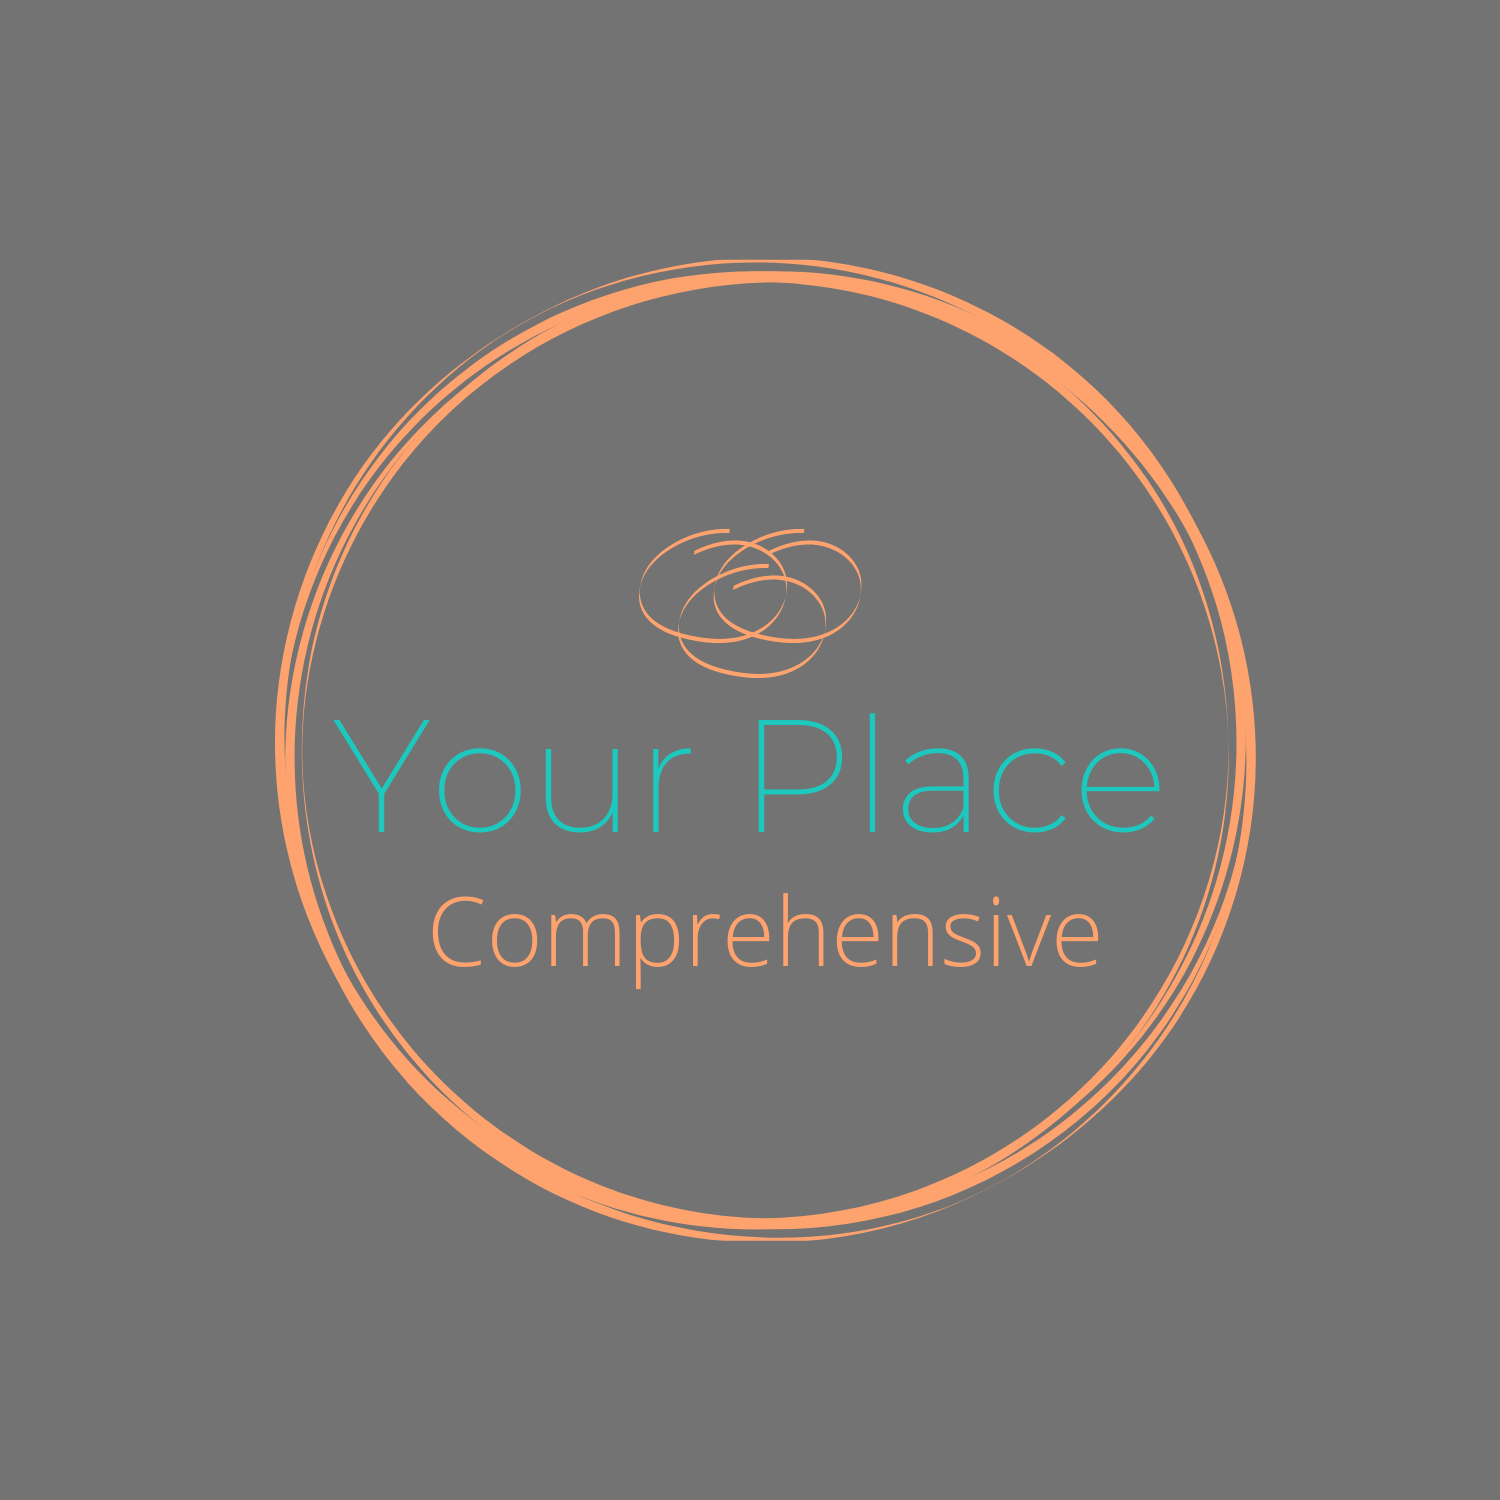 Comprehensive Your Place - Your Place Solutions Services